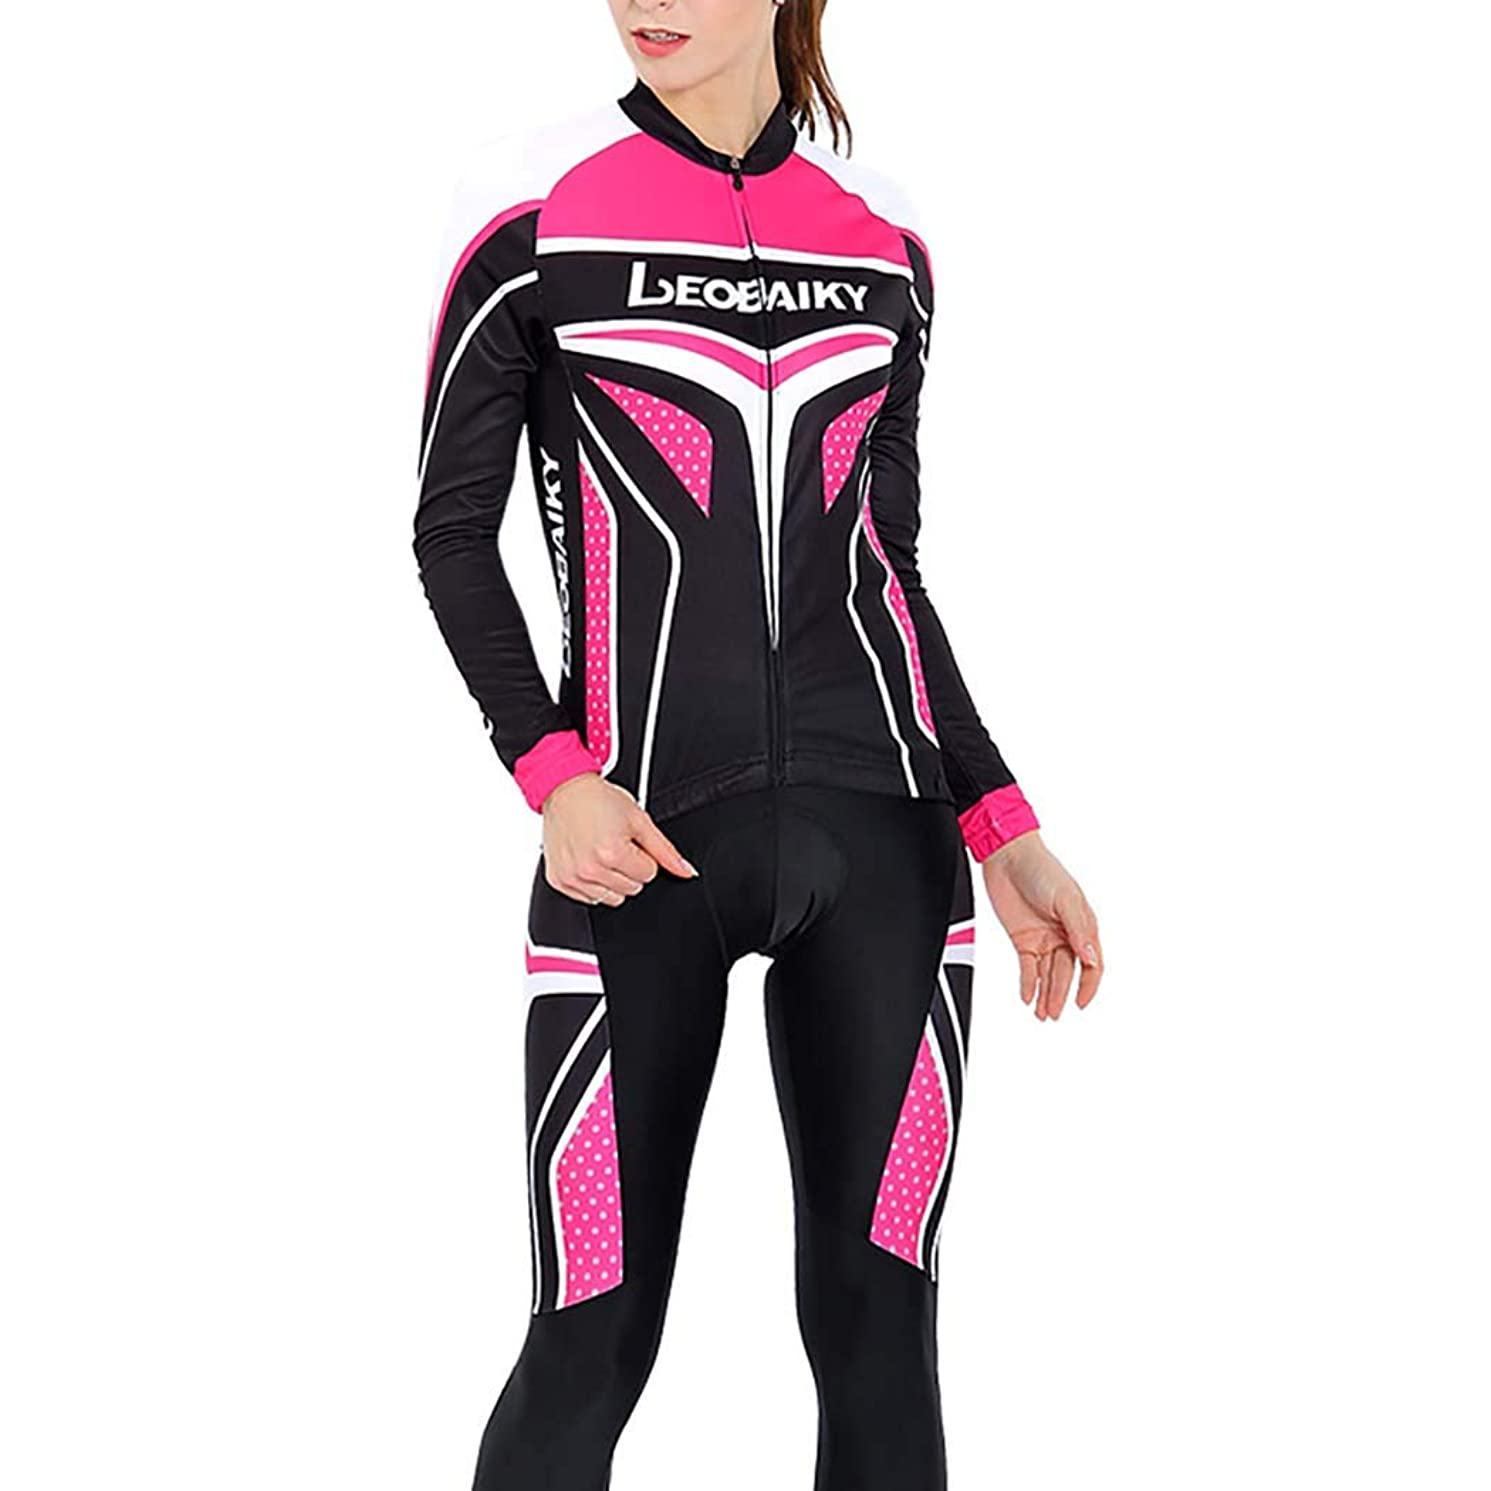 LEOBAIKY Cycling Jersey, Cycling Shorts Women Cycling Shorts Women Padded Quick Dry for MTB Road Bicycle Outdoor Sports,XL